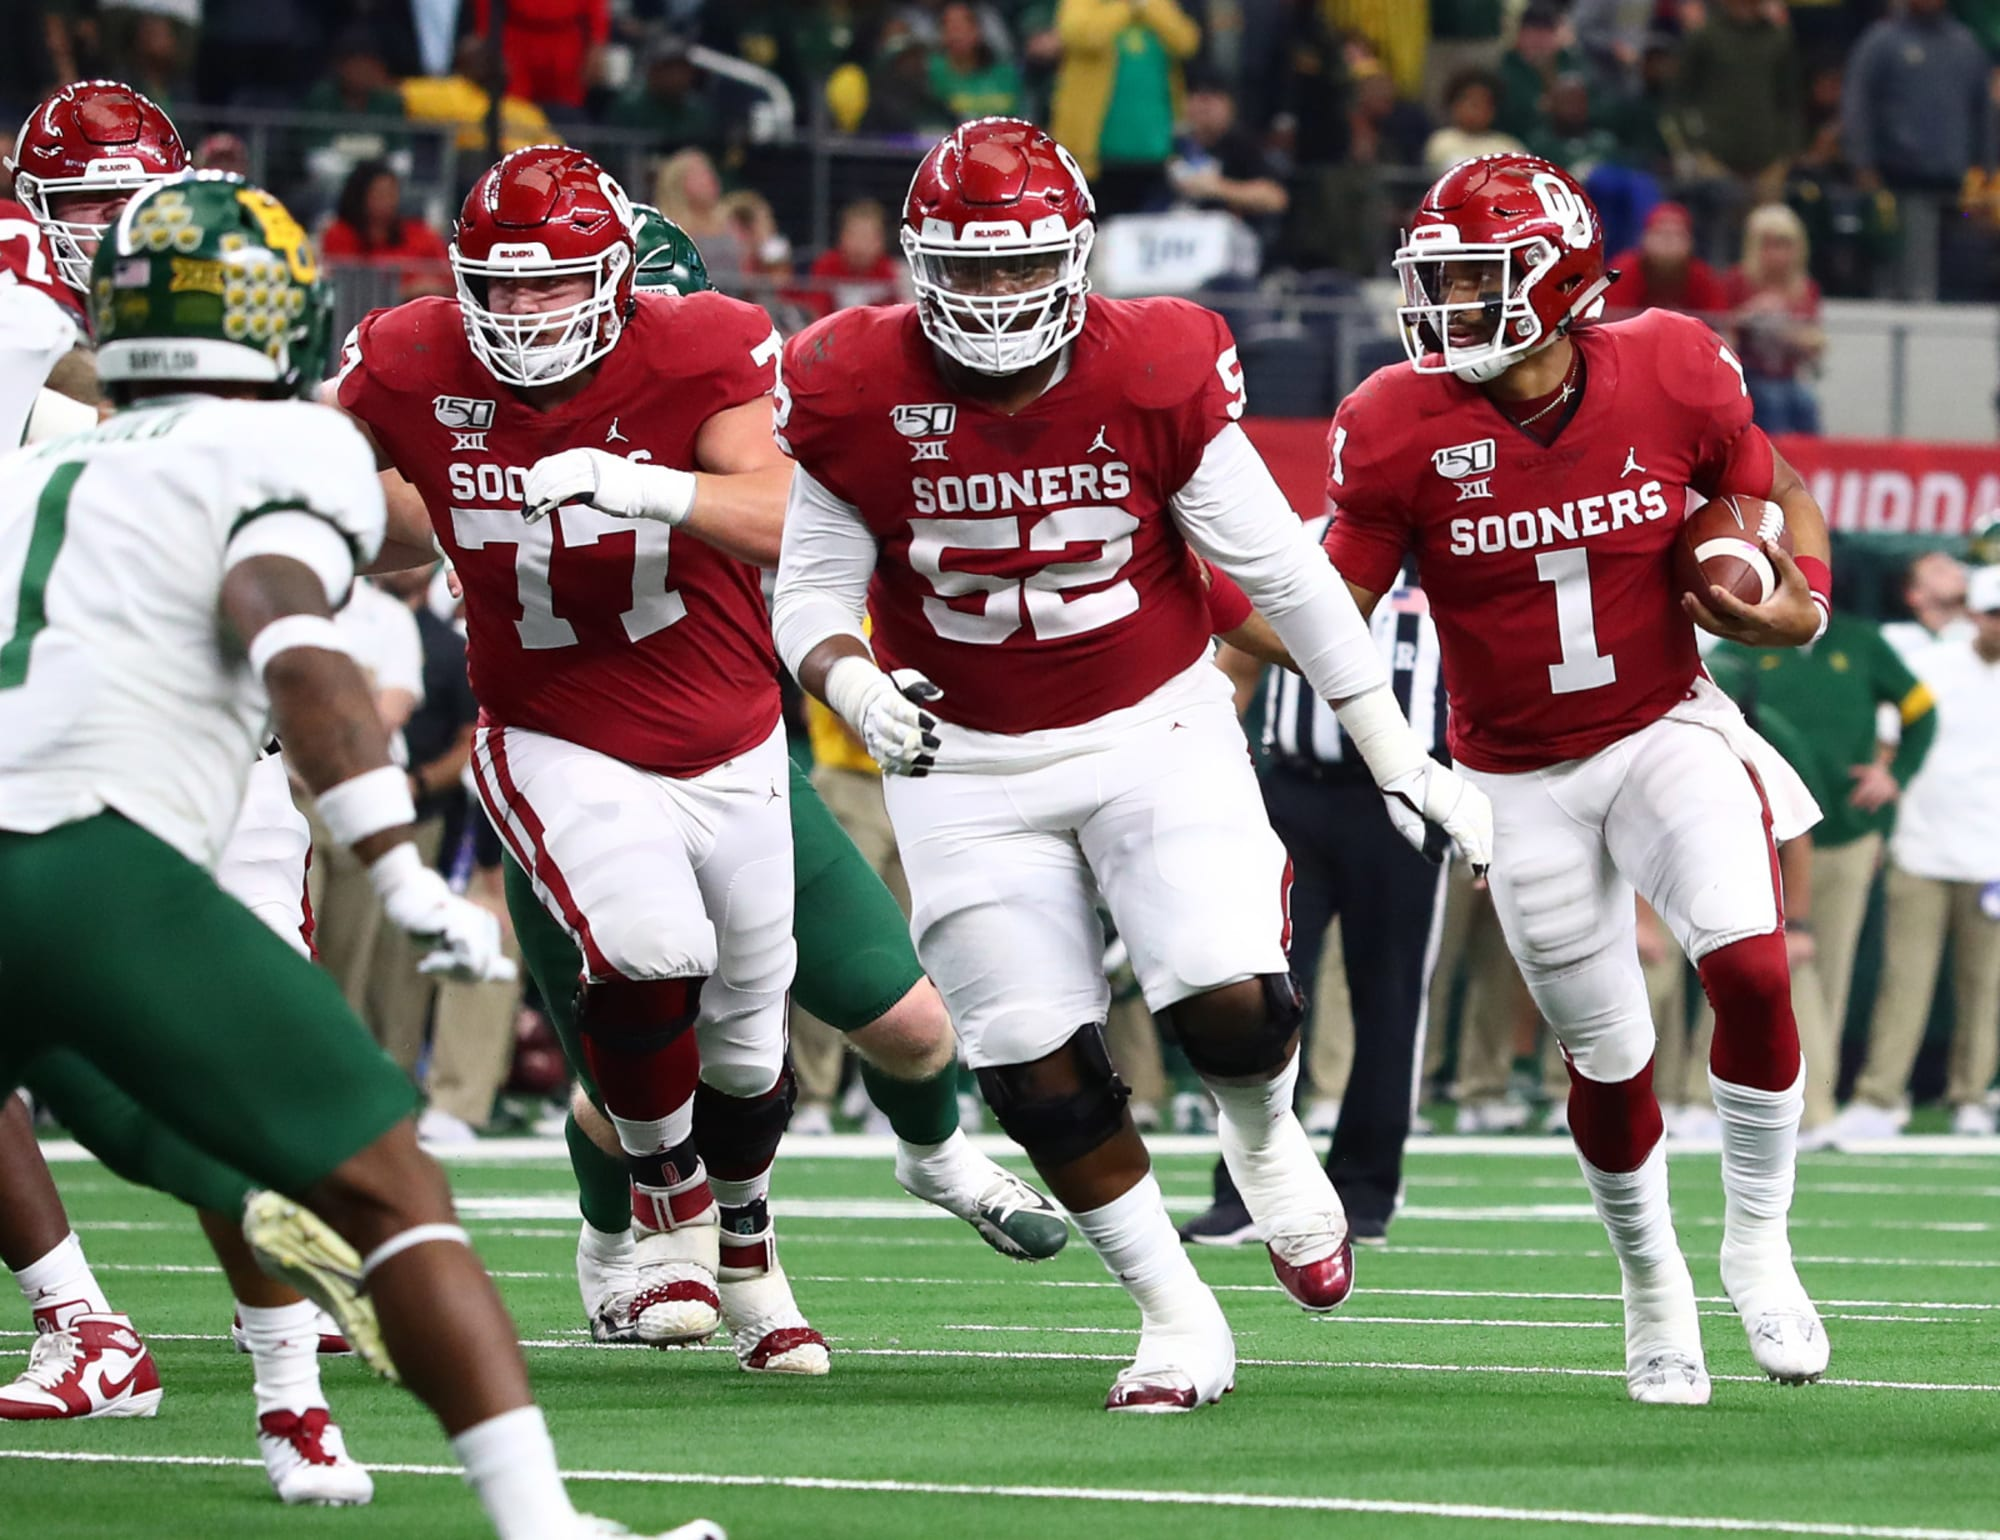 Oklahoma football: Strong O-line key to Sooners' offensive success